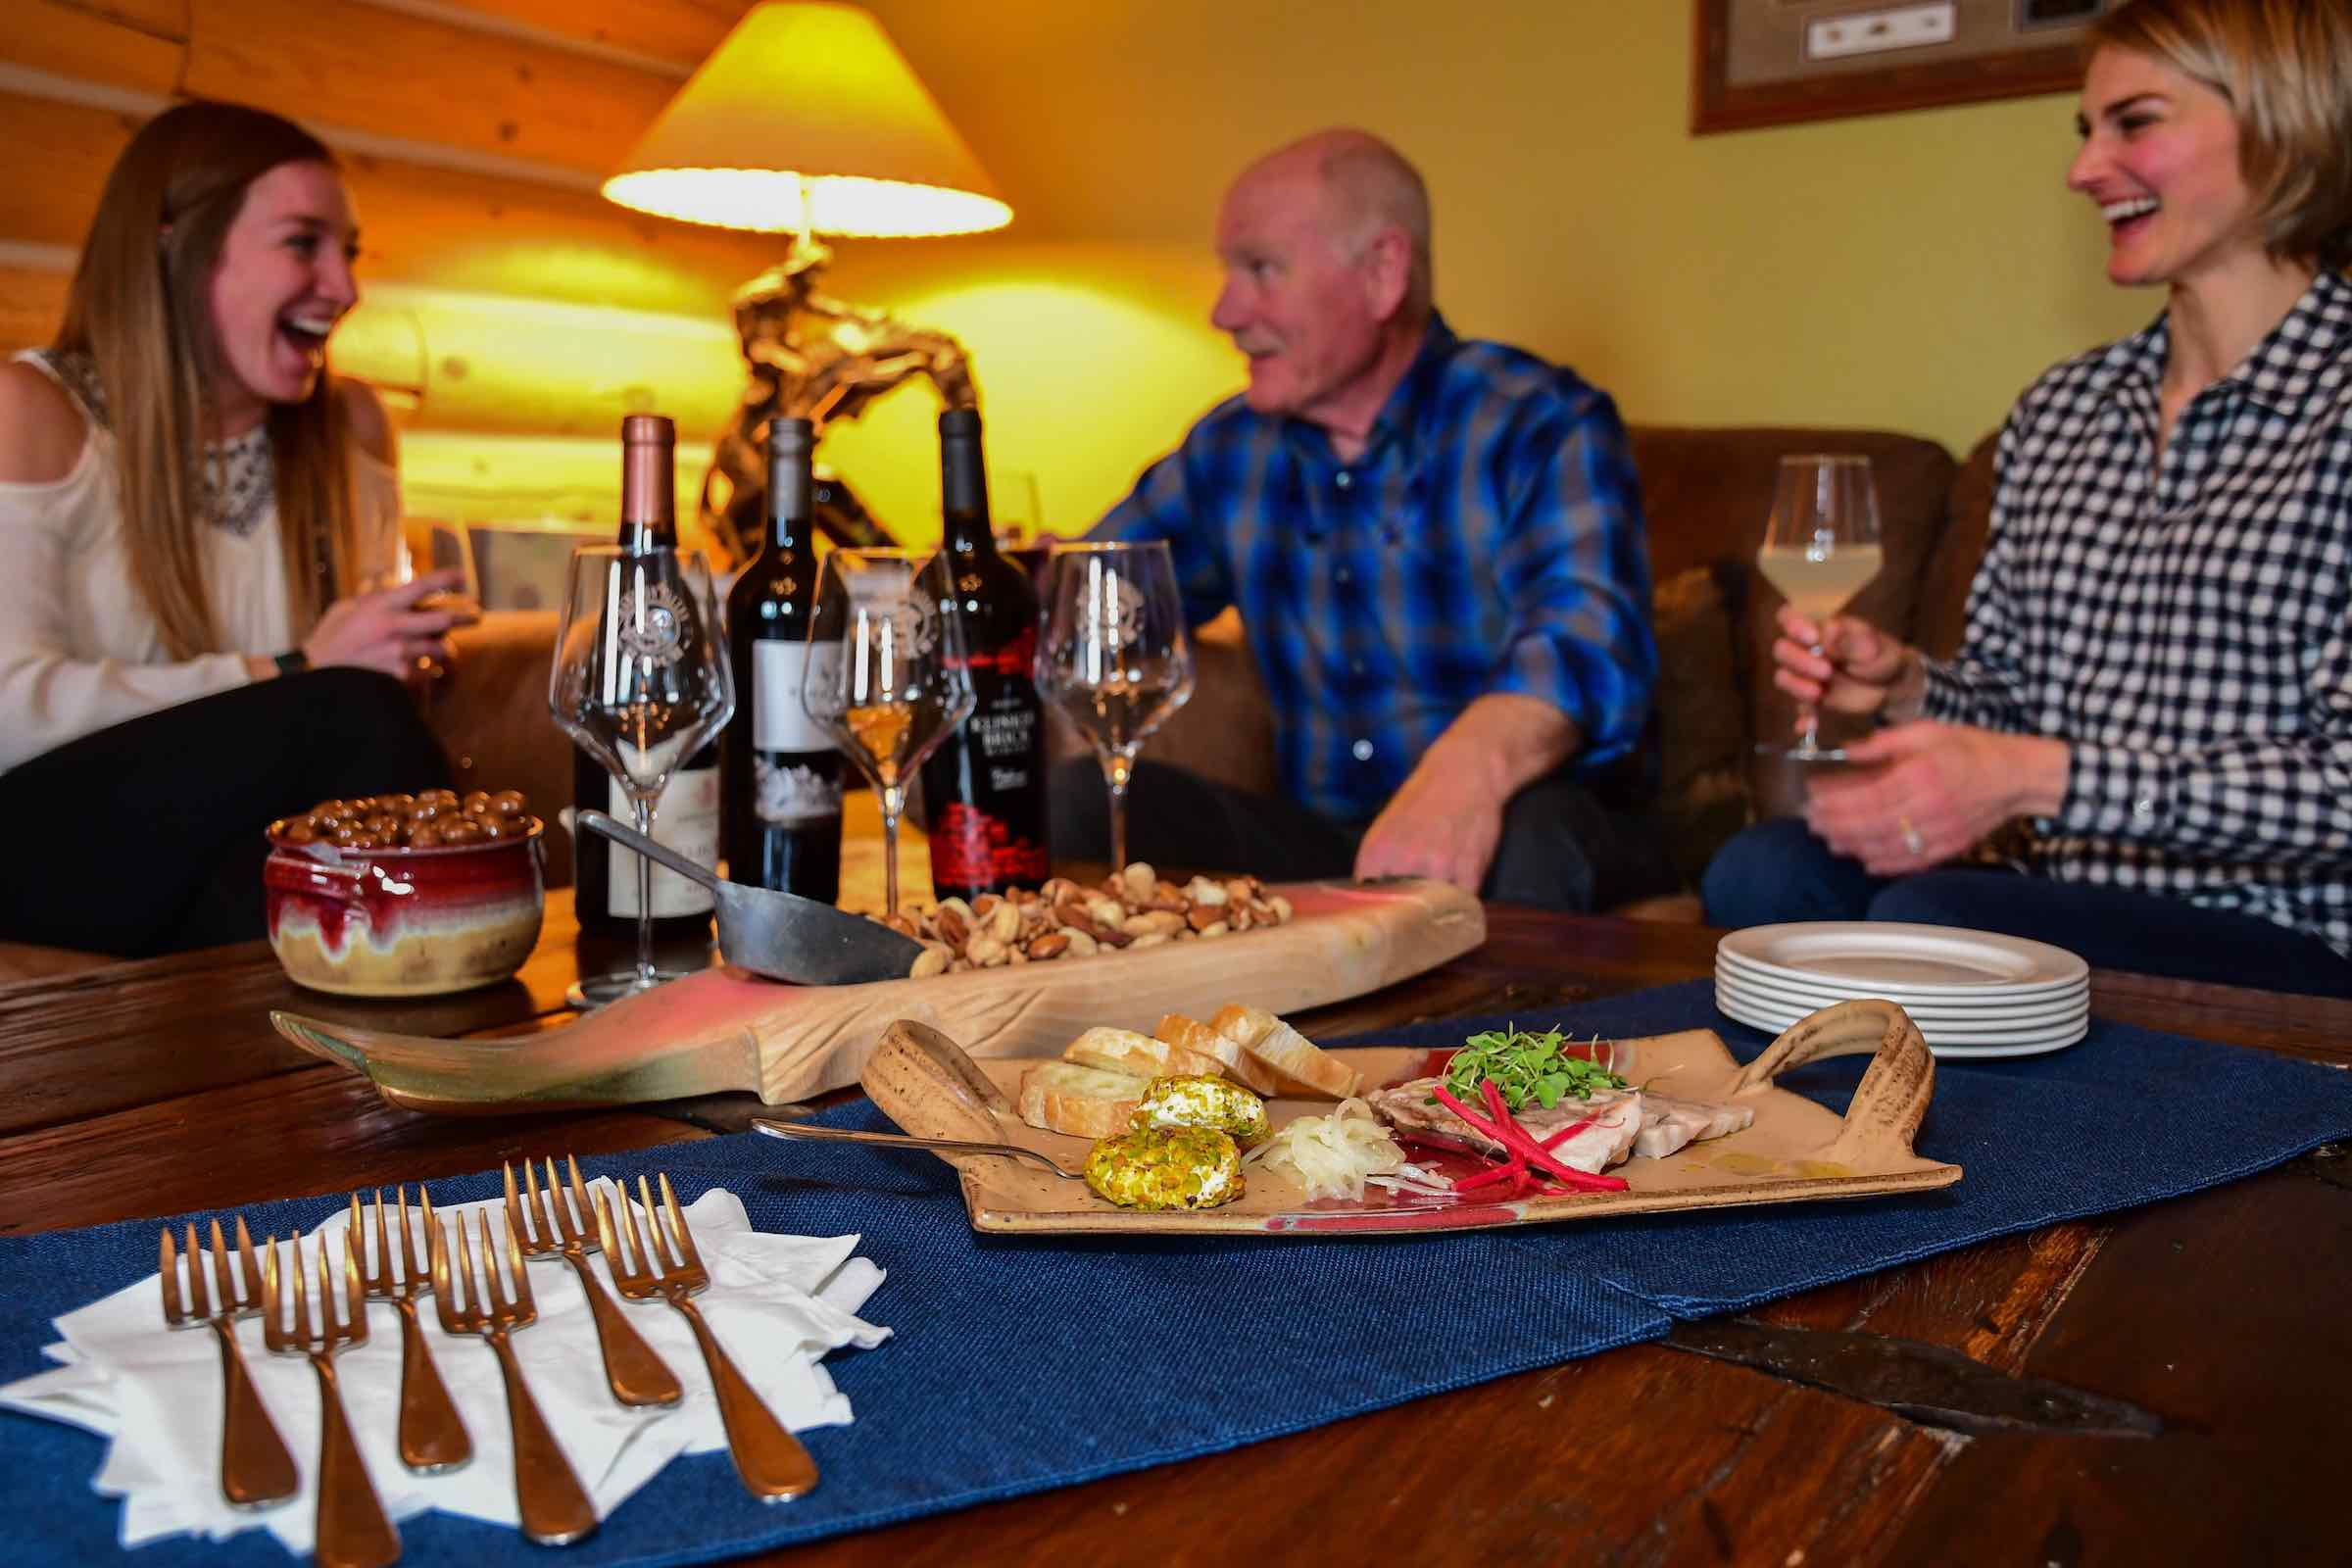 Guests enjoying appetizers before dinner at Madison Valley Ranch restaurant in Ennis, Montana.